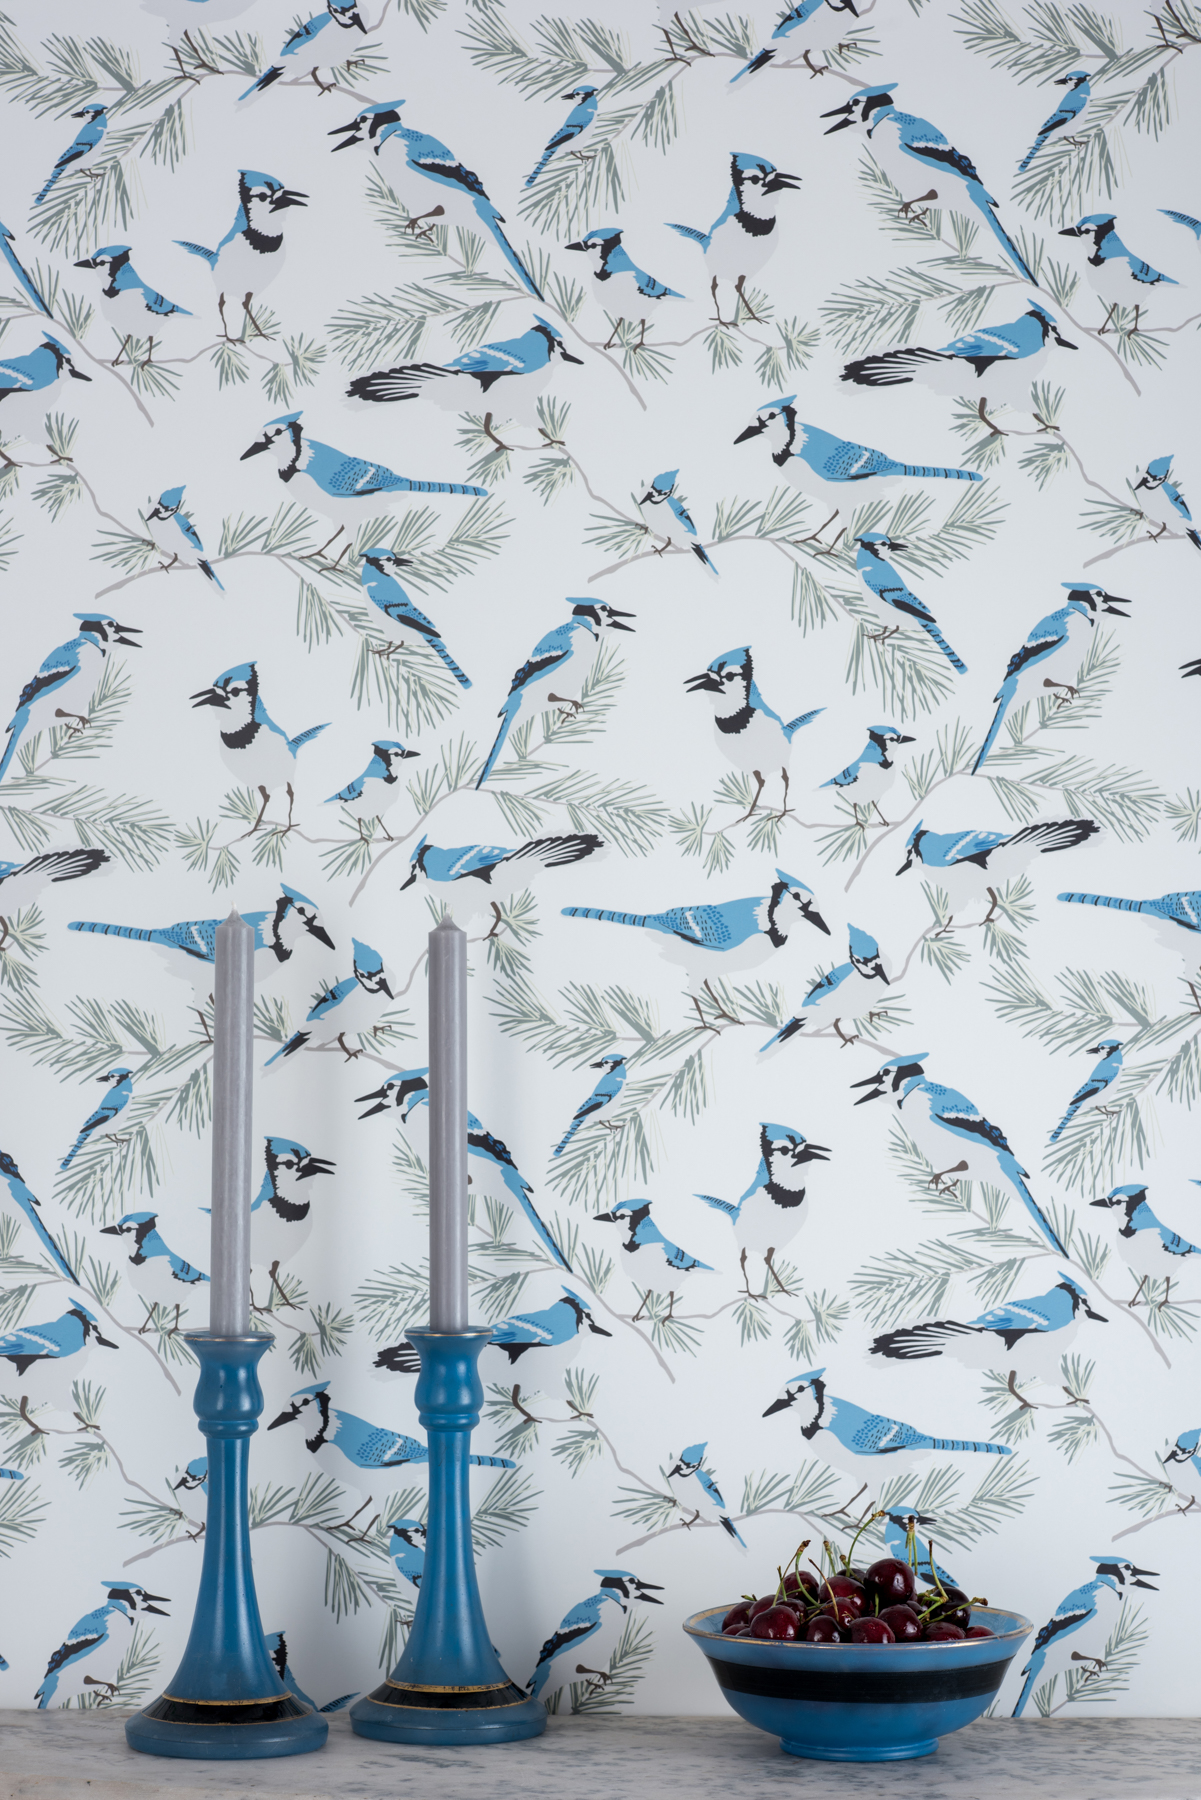 Kate Golding Blue Jay wallpaper // Modern wallcoverings and interior decor.